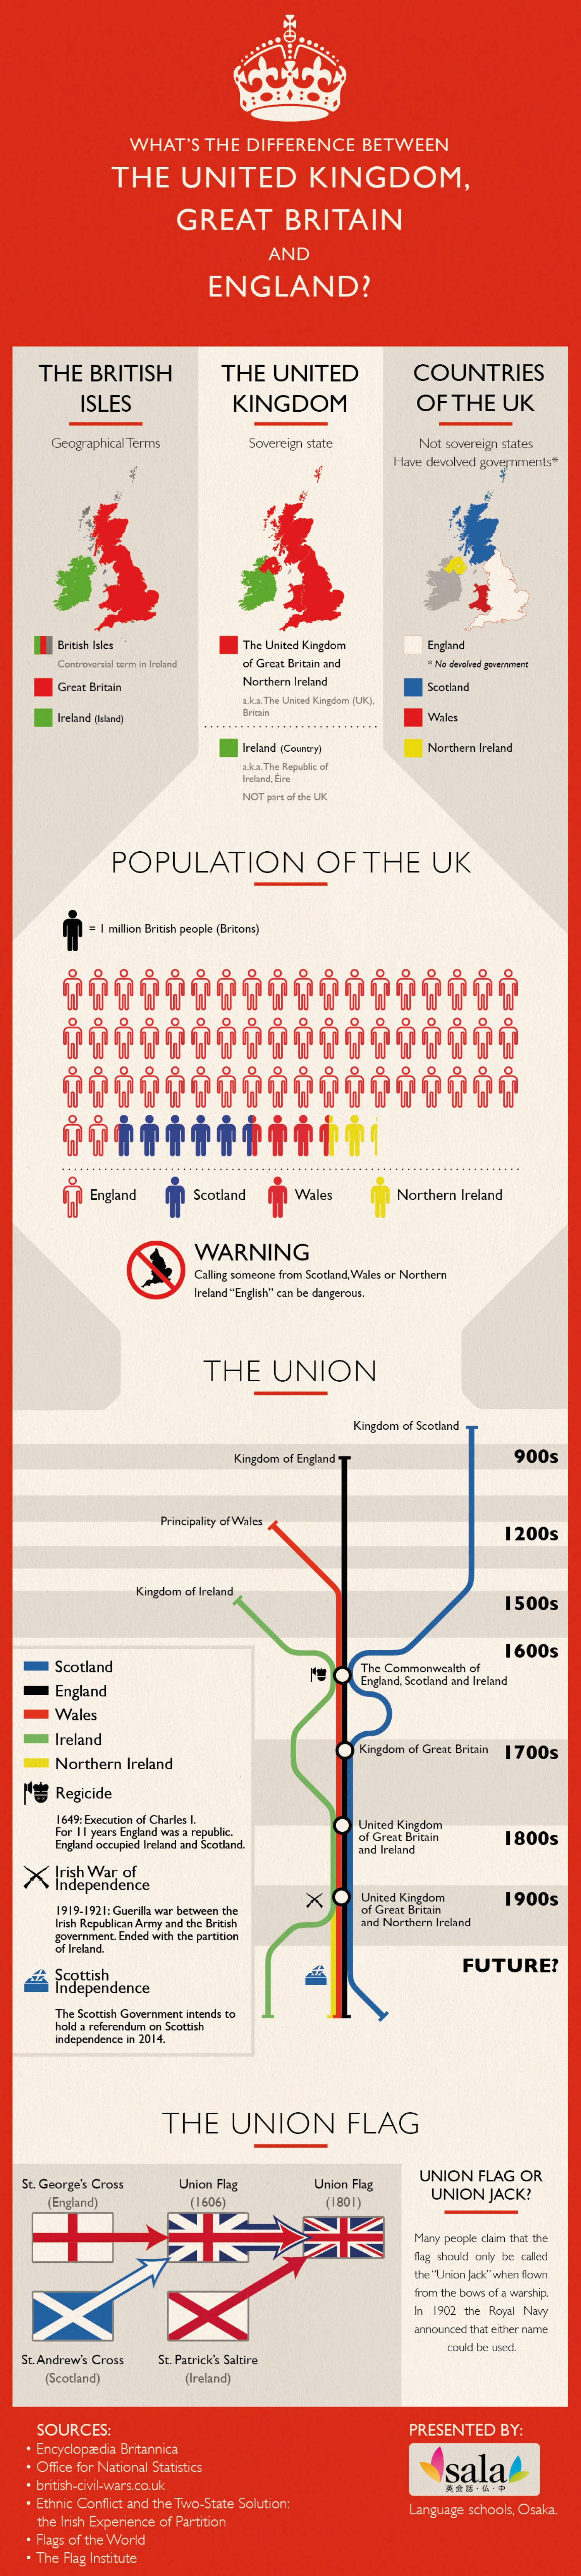 15 the-difference-between-the-united-kingdom-great-britain-and-england_5042de32a55e5_w1500